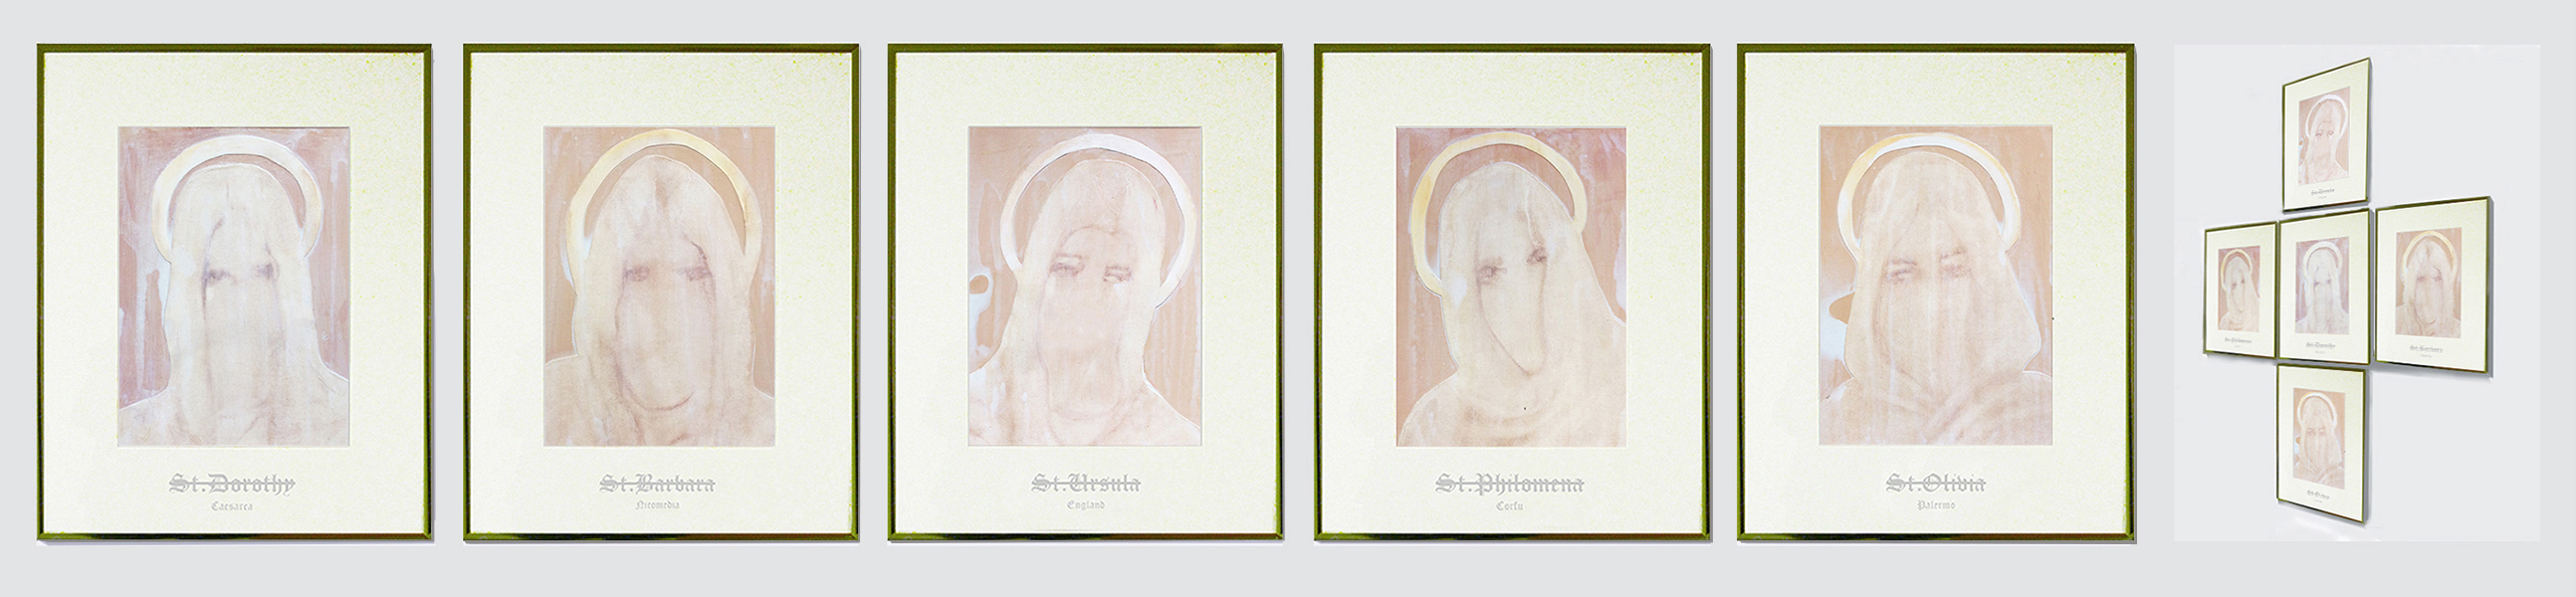 Sinopia :  St. Dorothy  /  St. Barbara  /  St. Ursula  /  St. Philomela  /  St. Olivia  (2015)   (51cm x 41cm x 5 / Dimensions variable)   Watercolour on paper  /  gold framed etched glass.